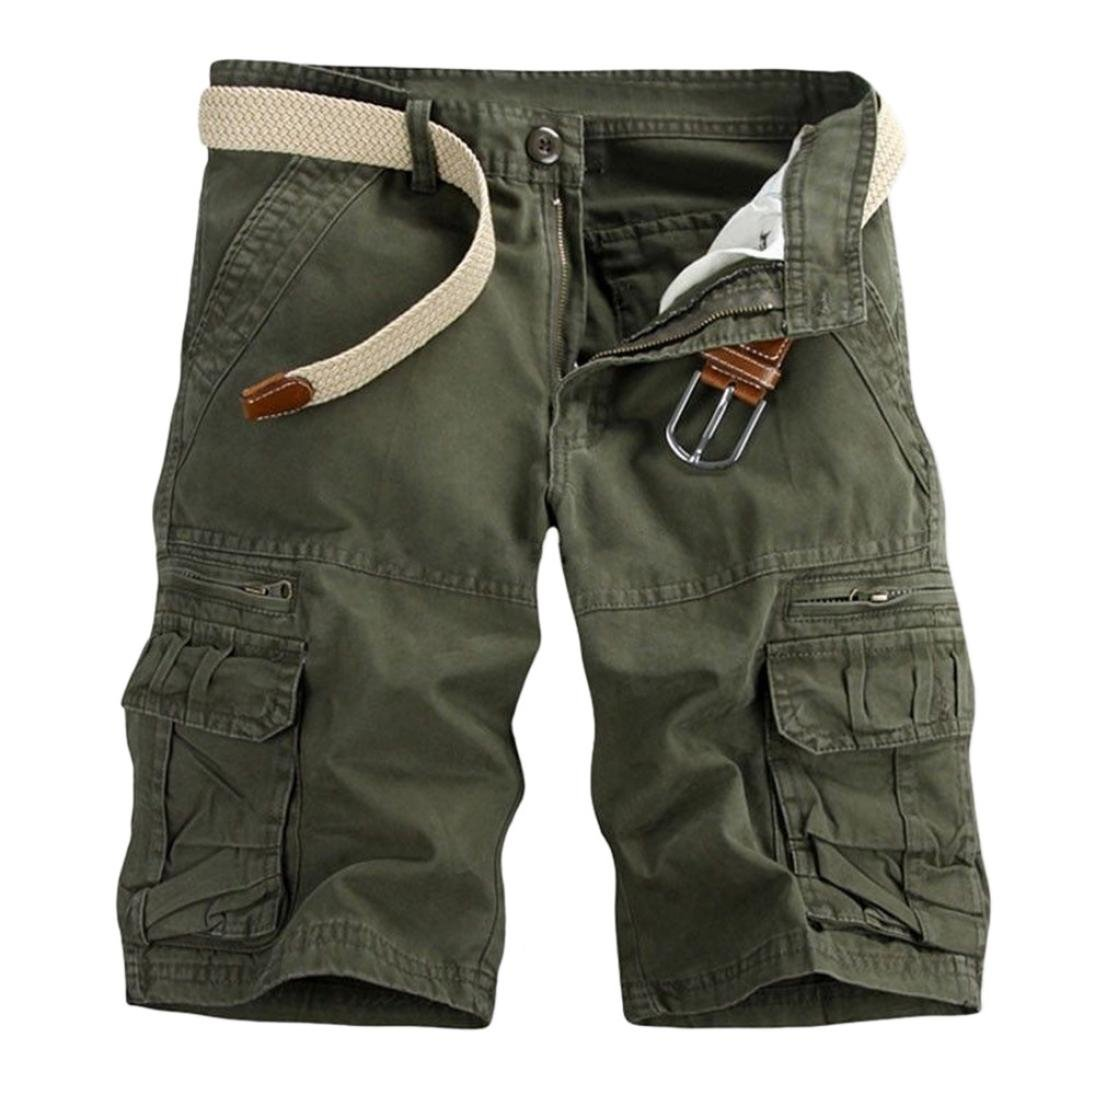 iZHH Men's Pure Color Outdoors Pocket Beach Work Trouser Cargo Shorts Pant(Army Green,33)